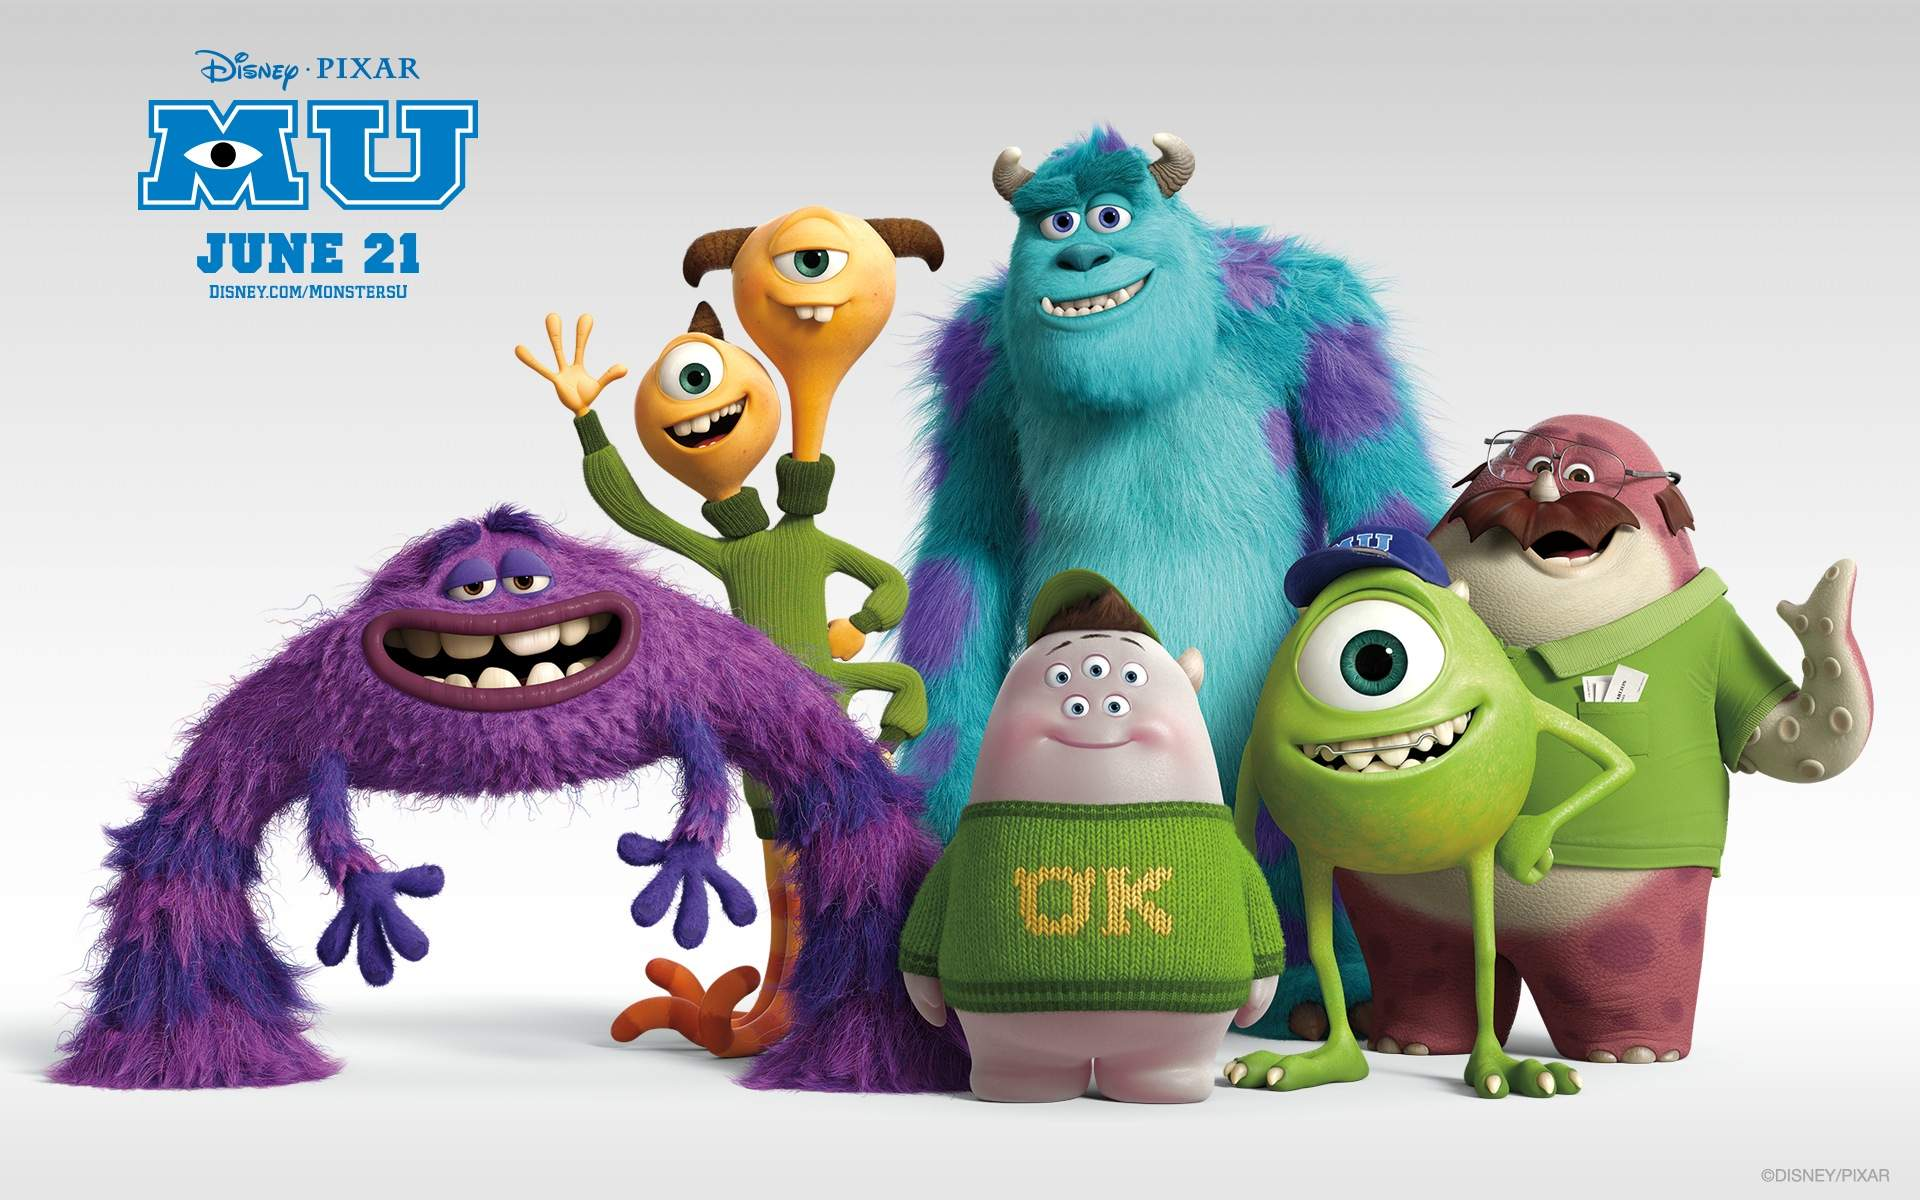 Box office and Mike and sulley